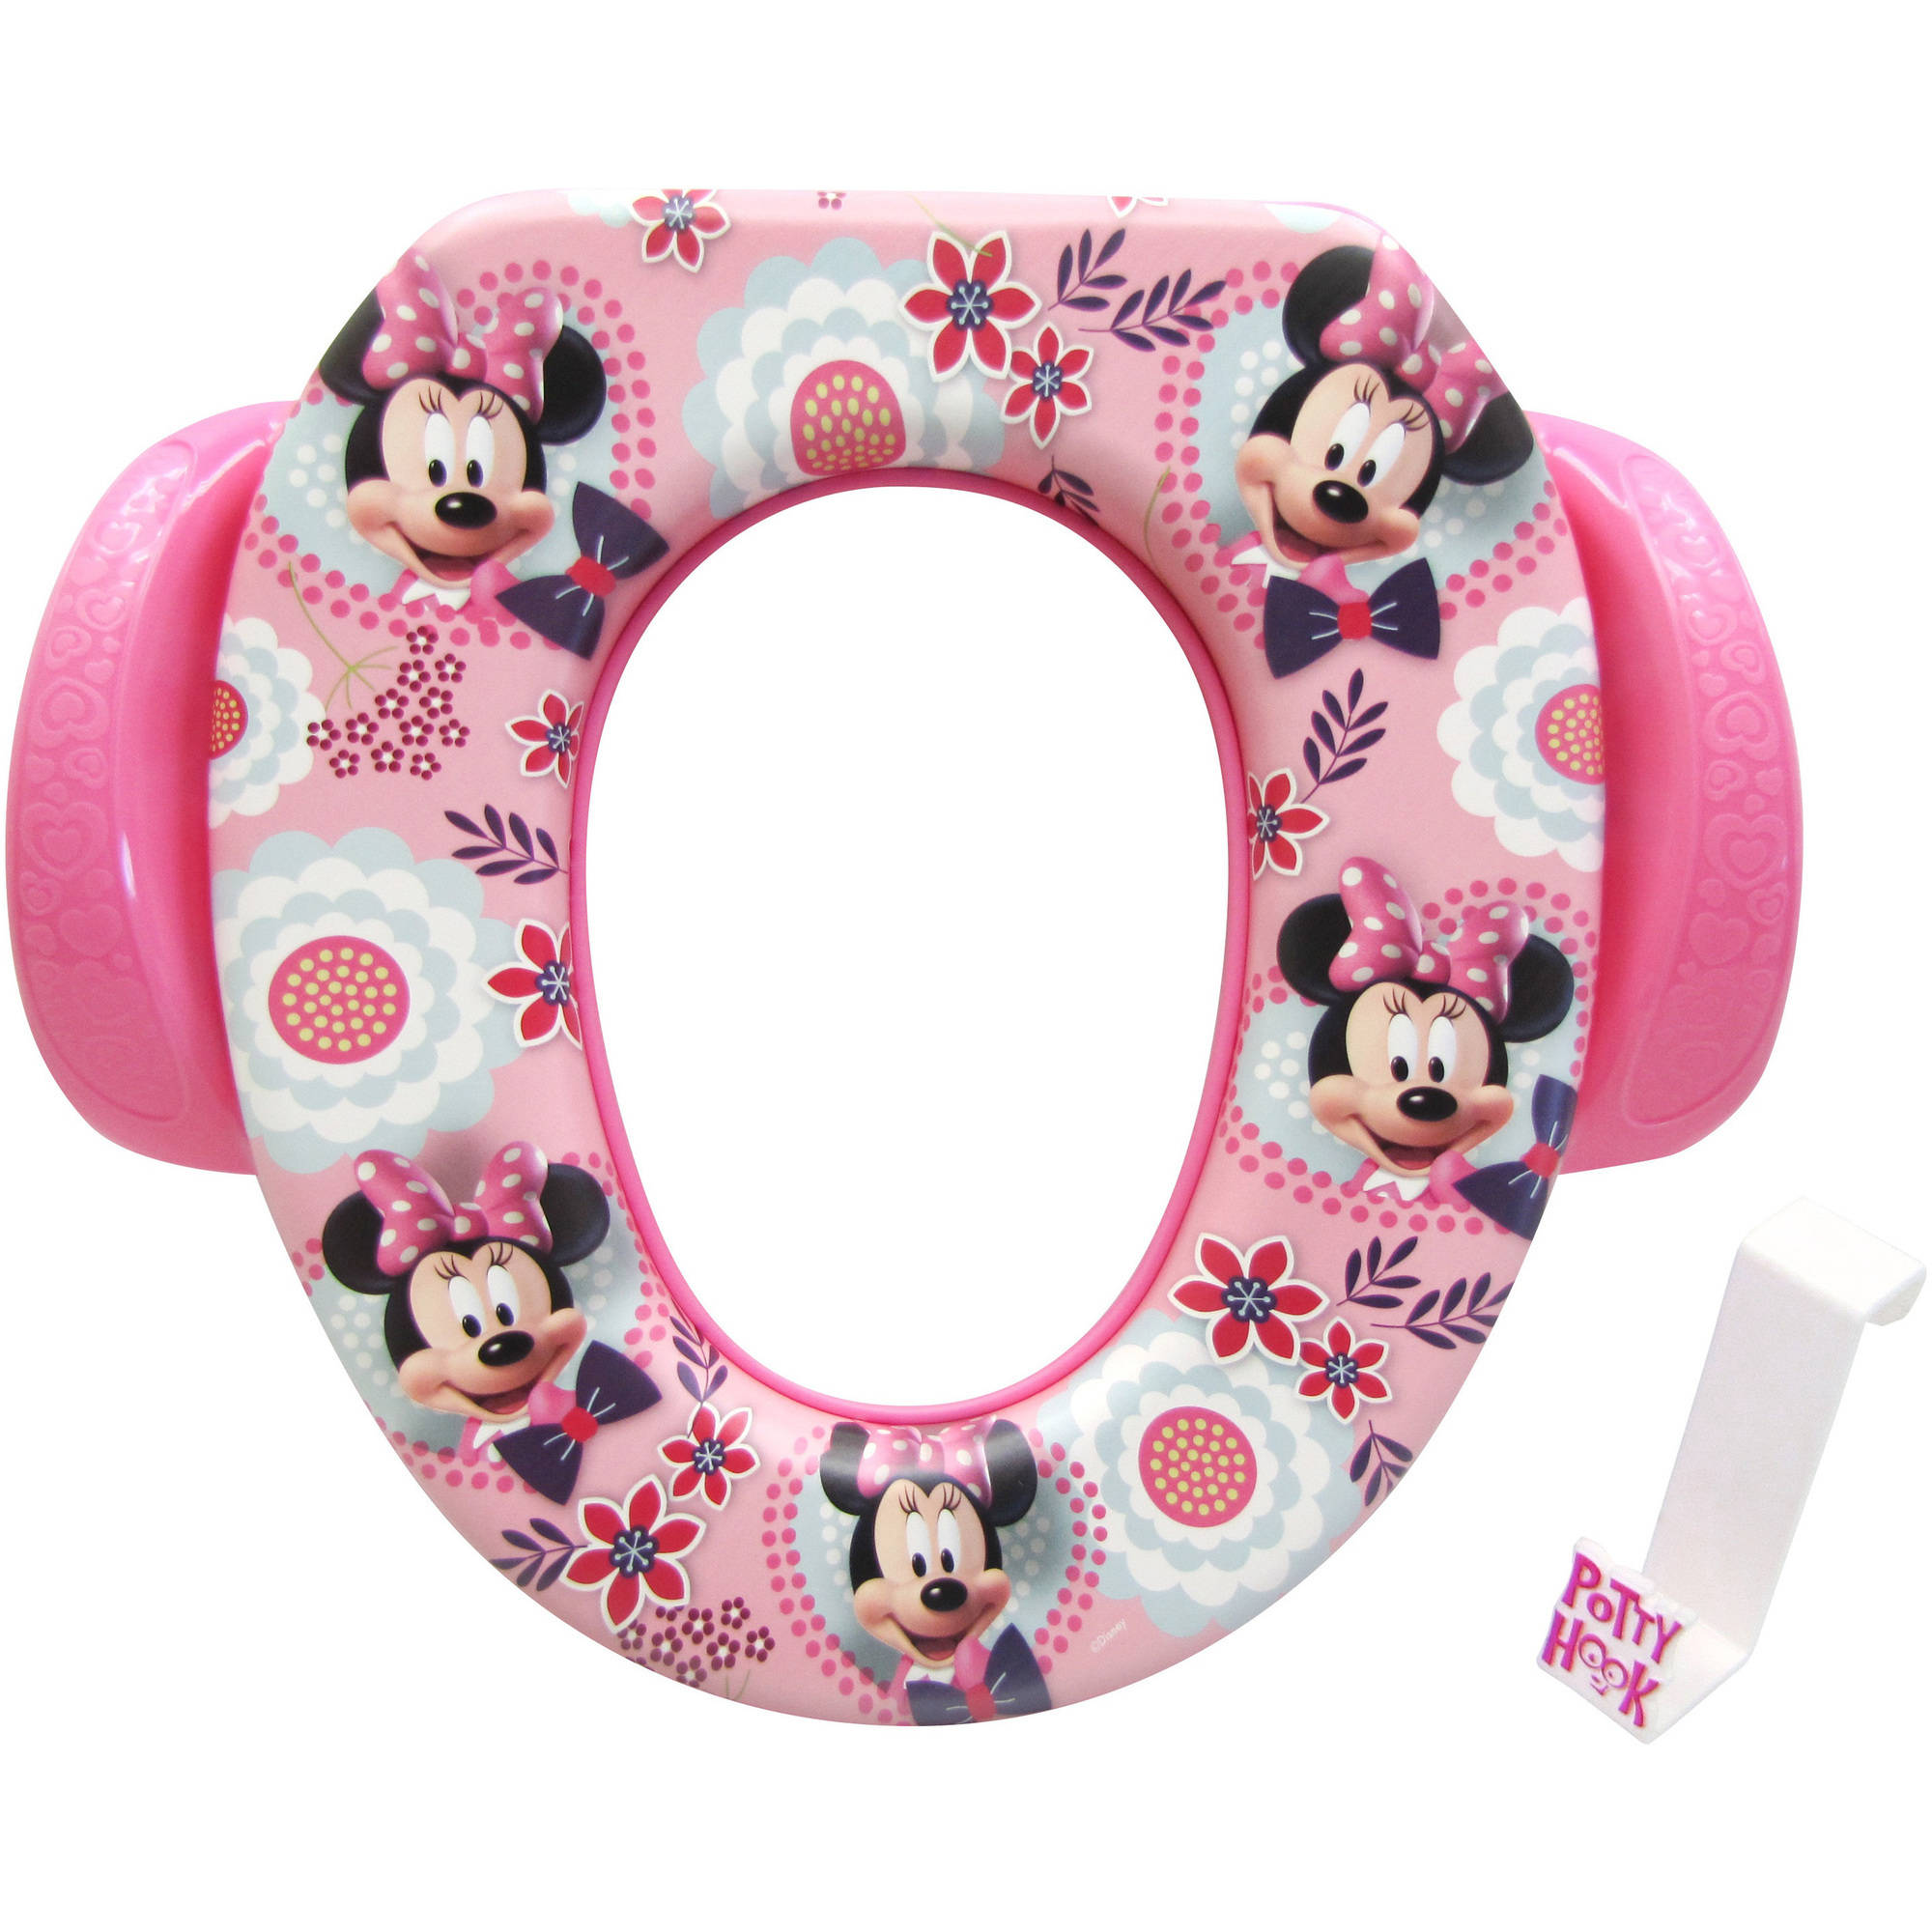 Minnie Simply Adorable Soft Potty Seat